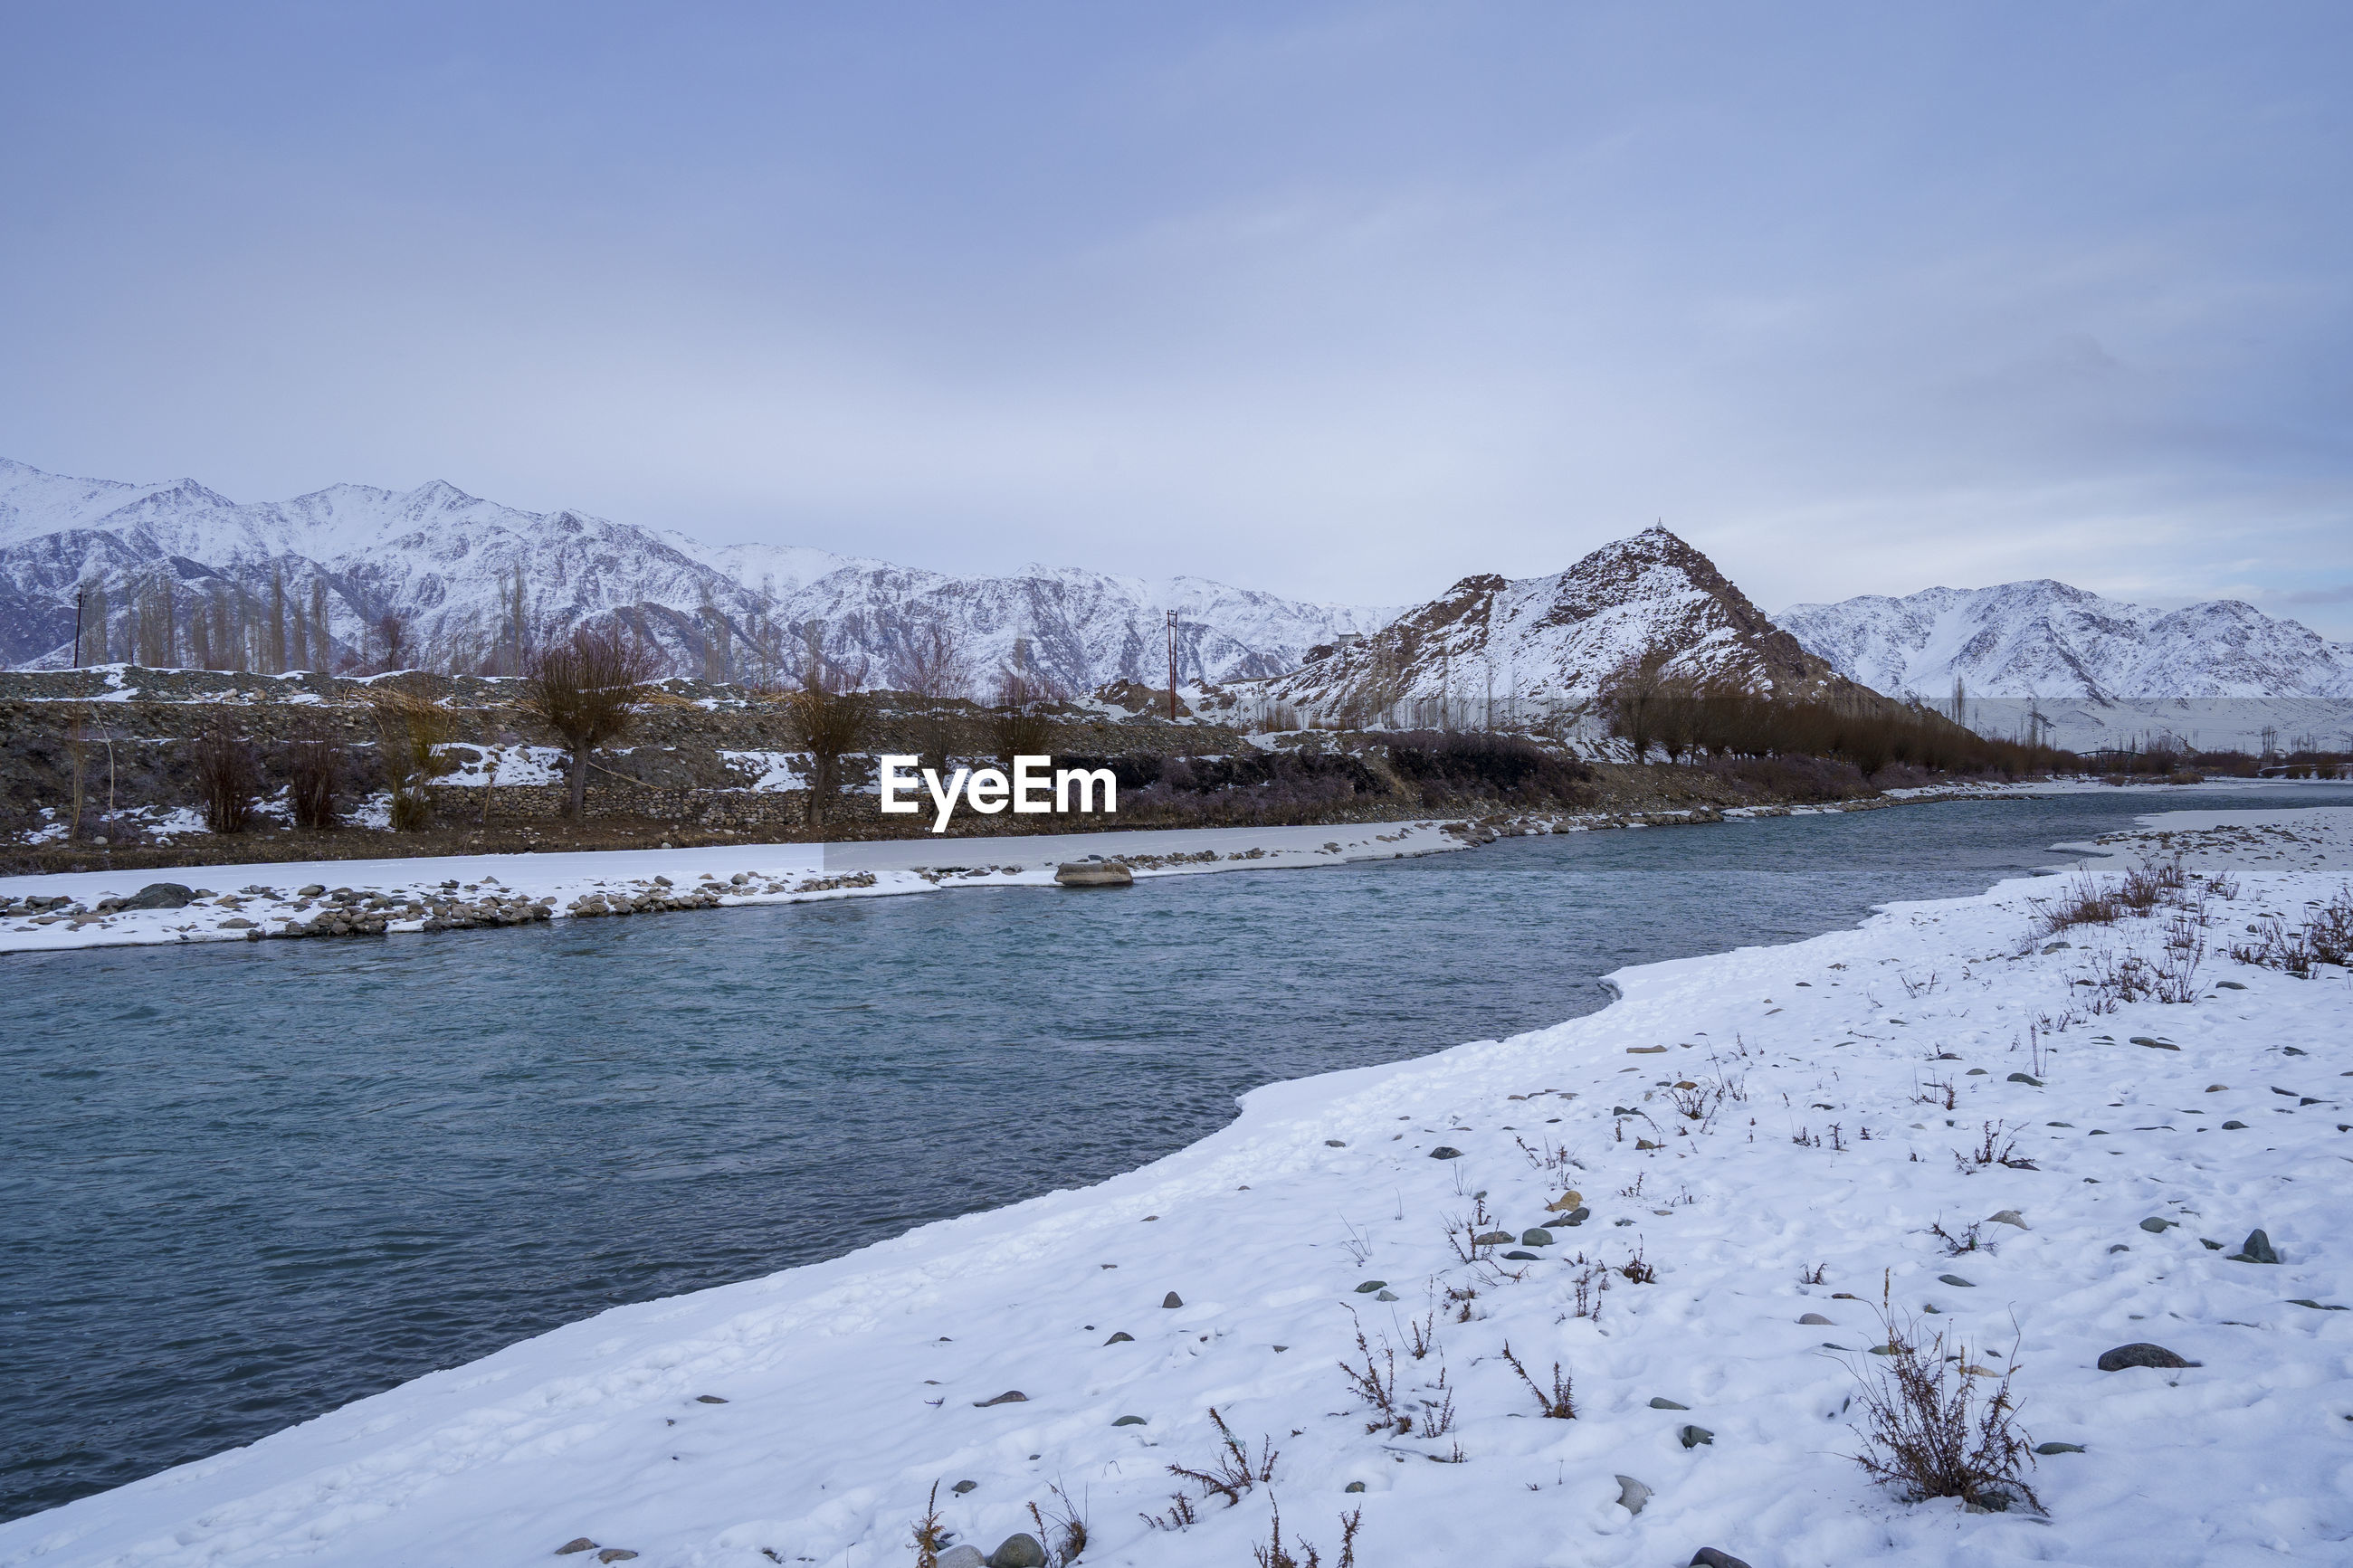 SCENIC VIEW OF FROZEN SNOWCAPPED MOUNTAINS AGAINST SKY